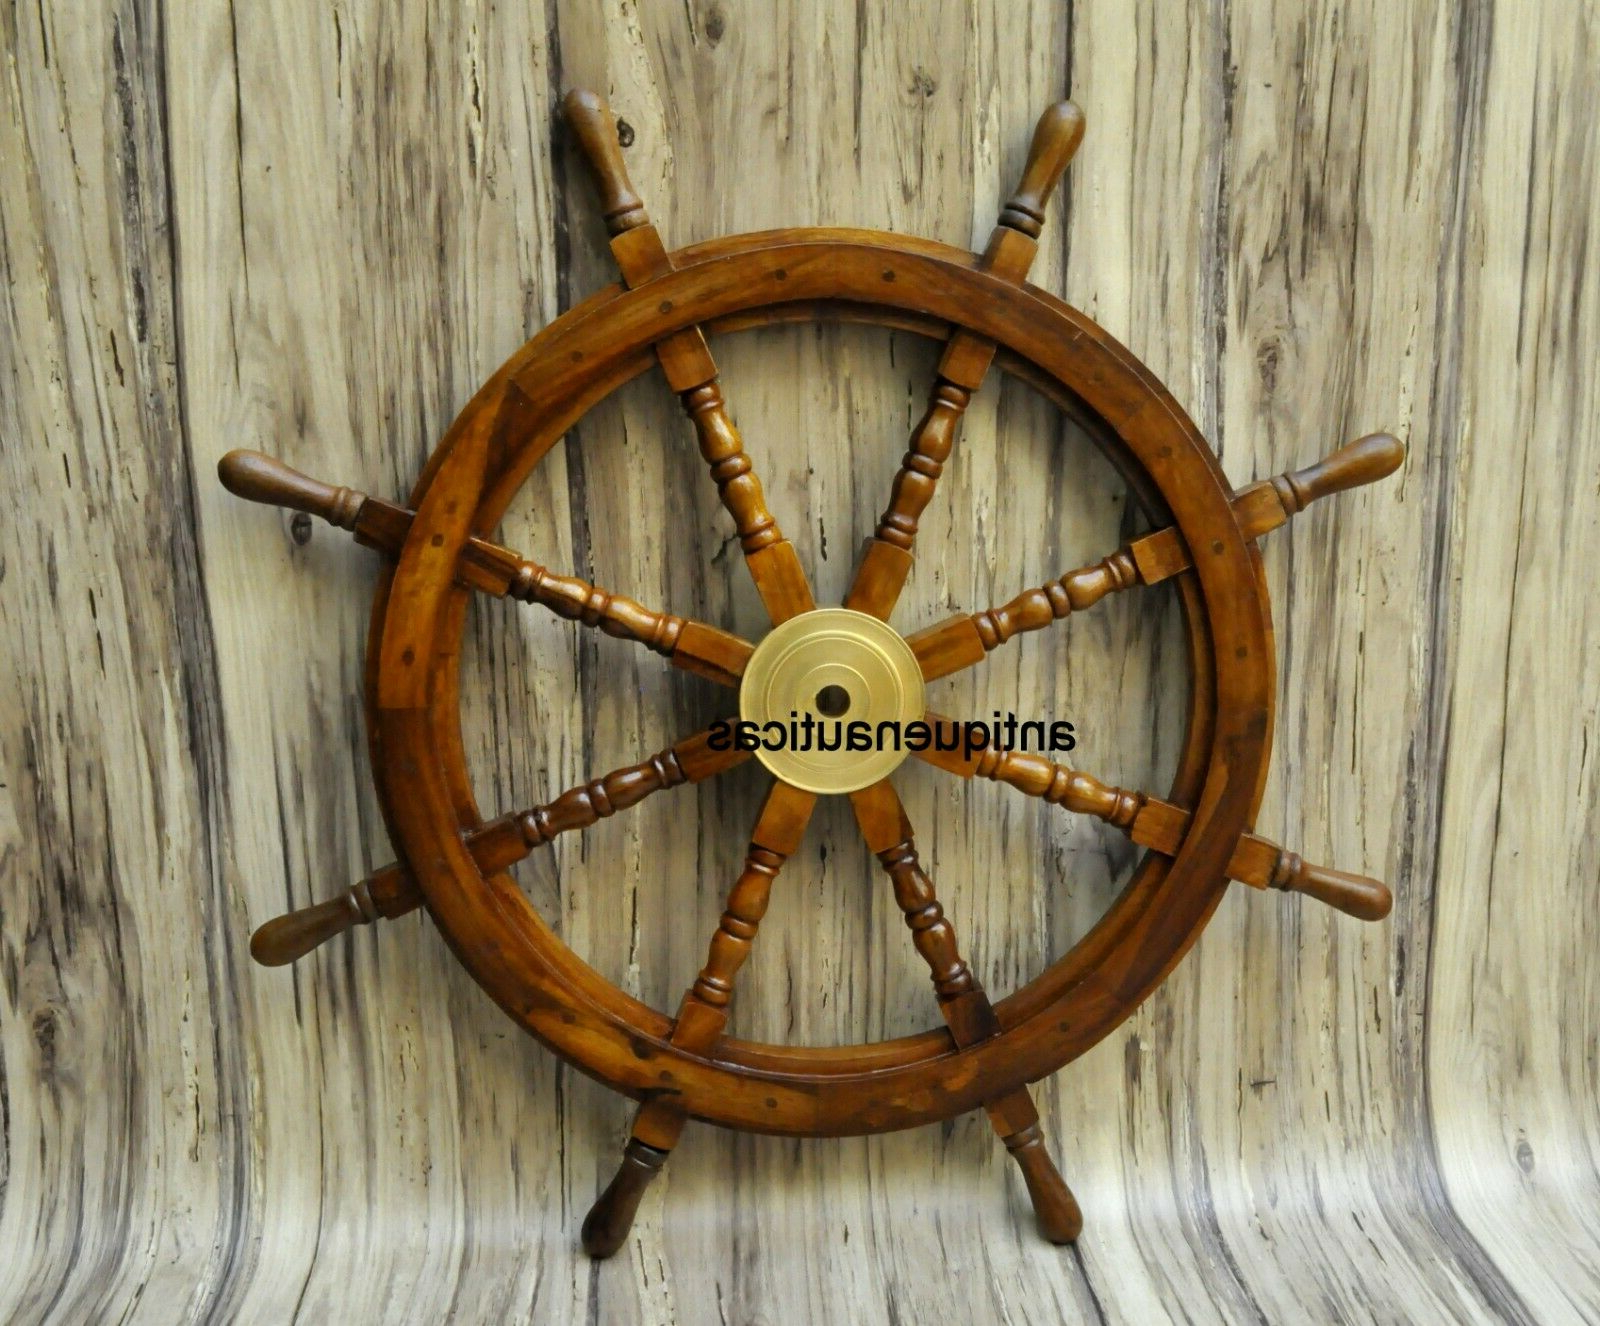 """Nautical 36"""" Wooden Ship Steering Wheel Pirate Decor Wood Within Newest Brown/brass Wood Ship Wheel Wall Décor (View 13 of 20)"""